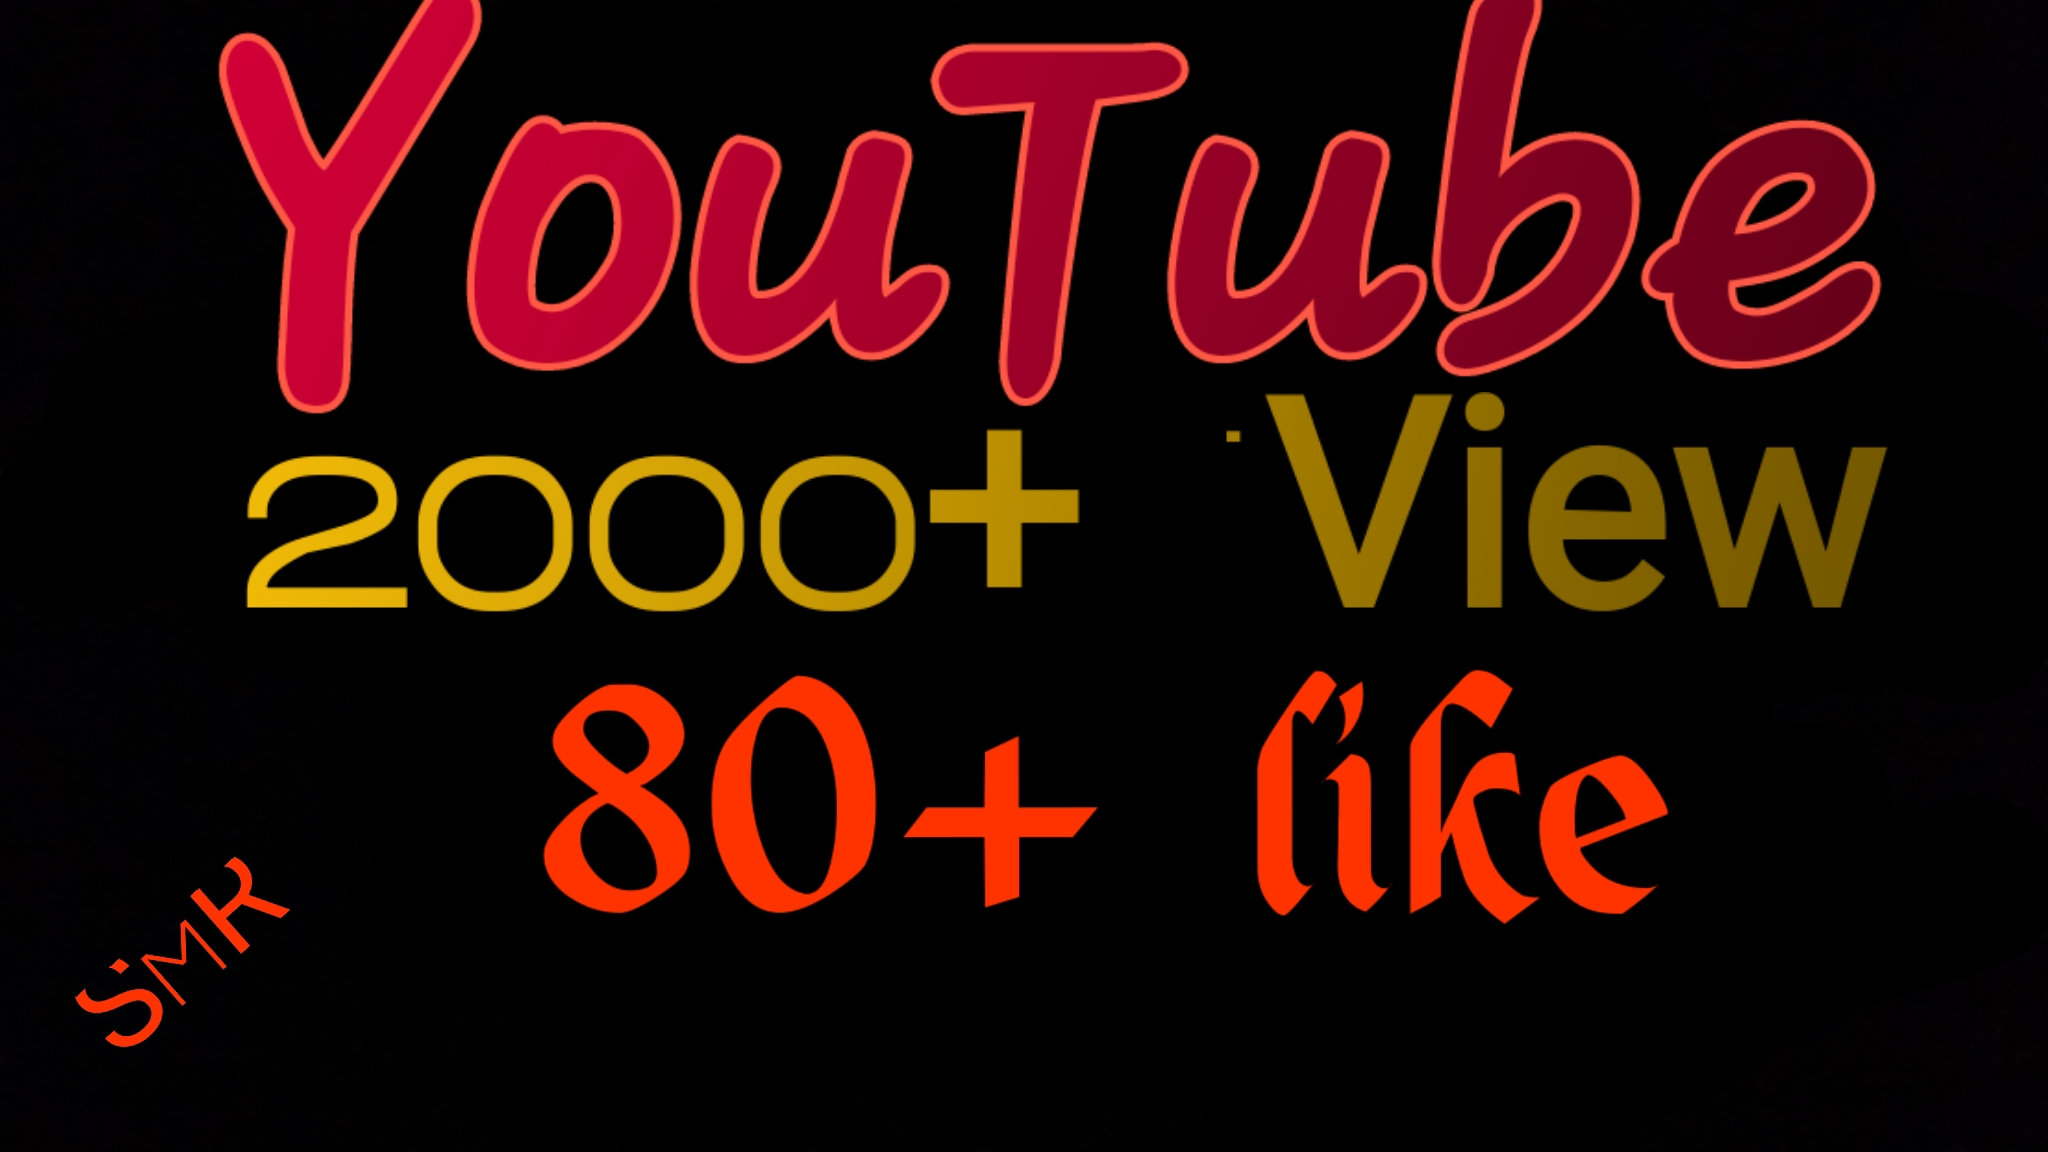 Safe 2000-2200+ HR Youtube Video View & 100+ Video like only